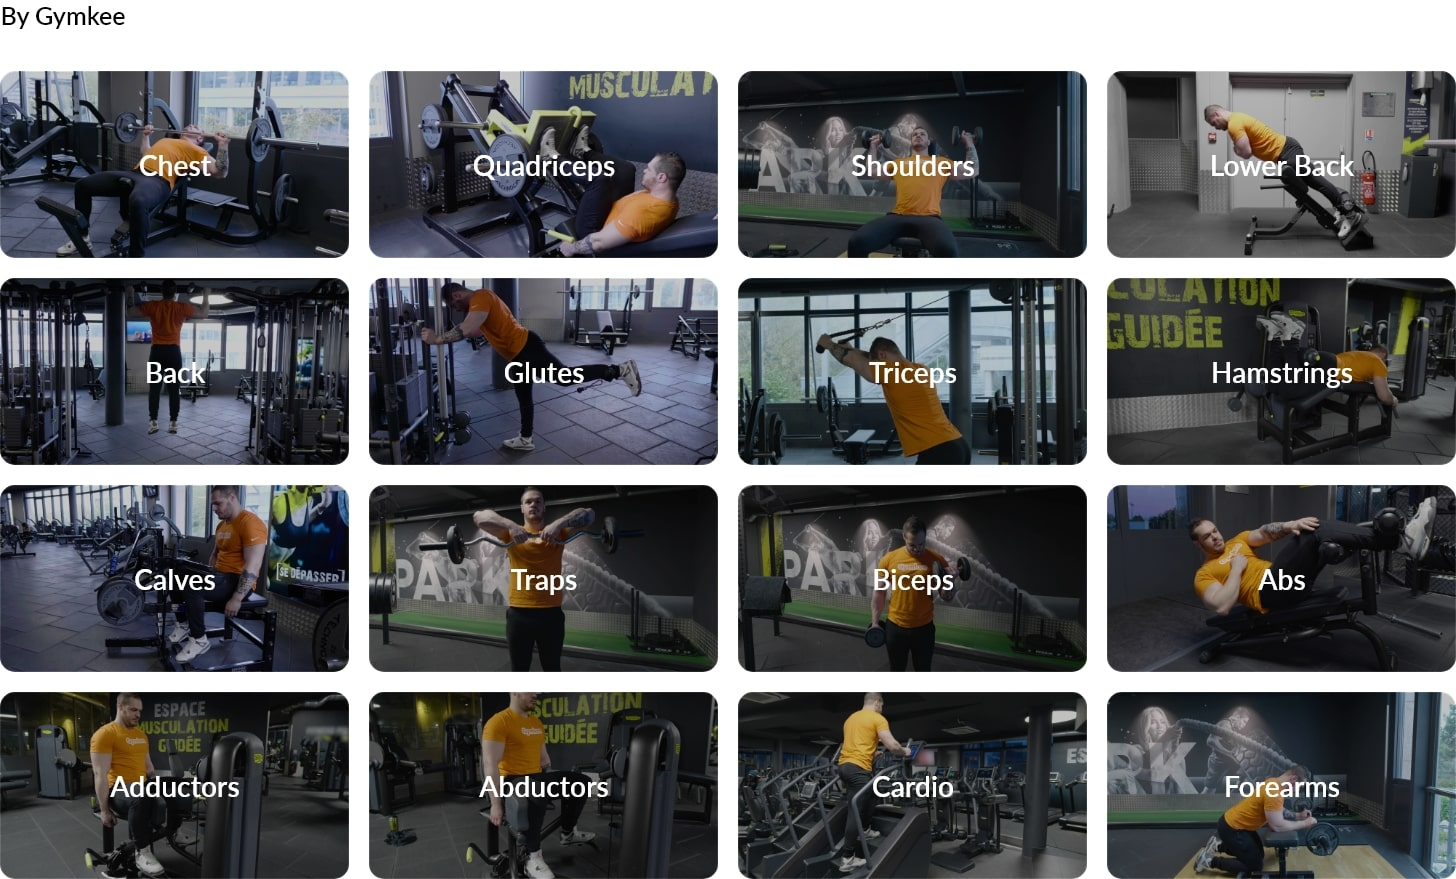 Personal trainers app - Gymkee - Personal training app